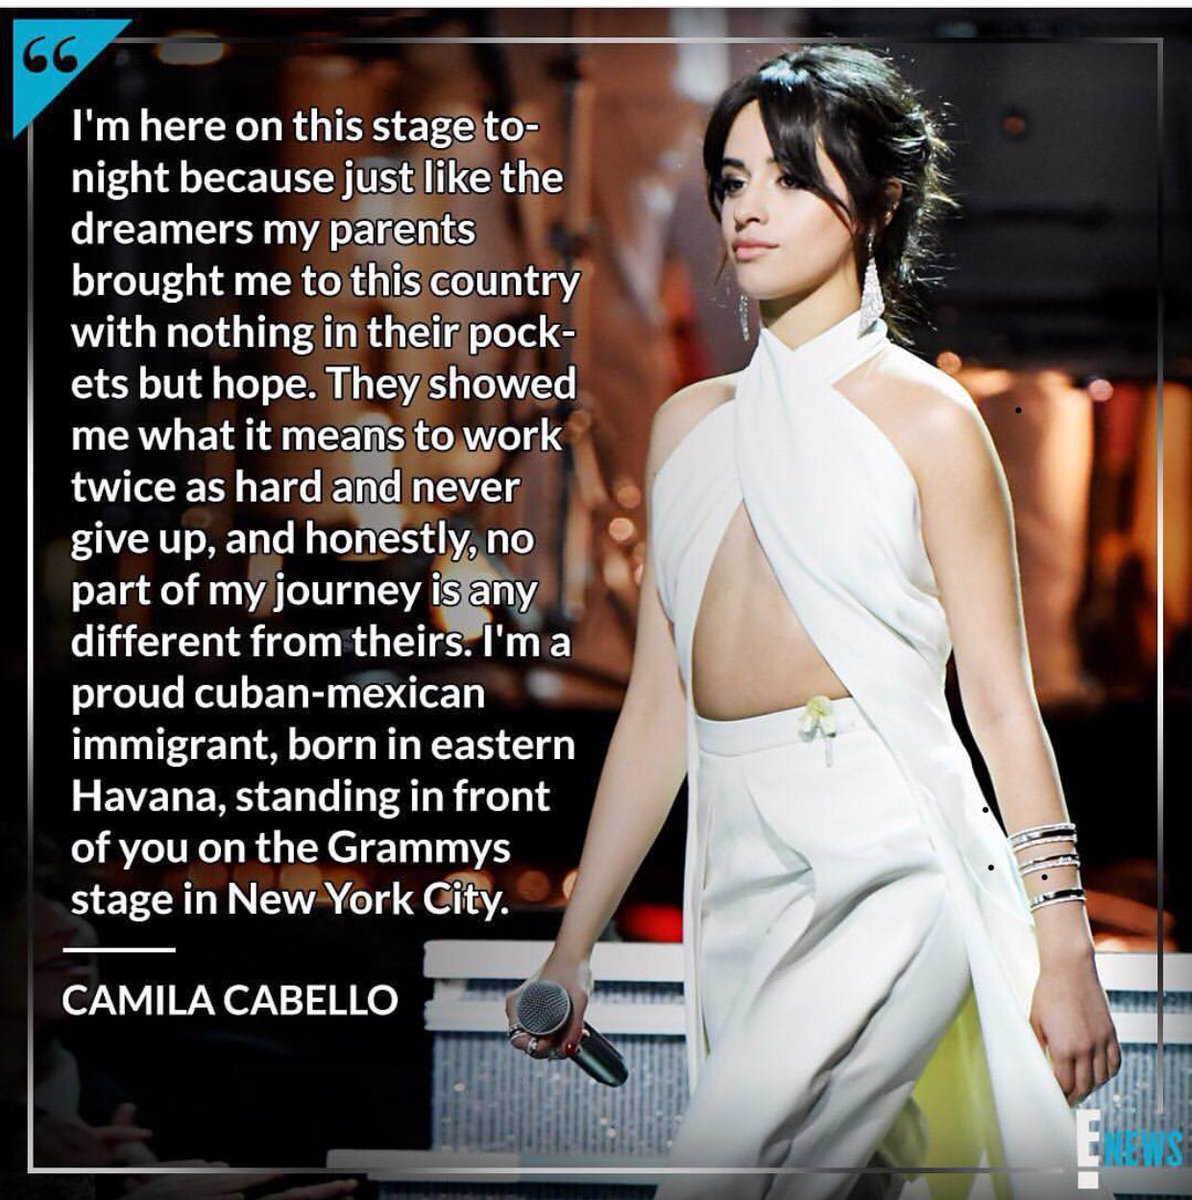 This is how you represent! Great job @Camila_Cabello ???????????????????????????????? #grammys https://t.co/6TvoU9Kqrp